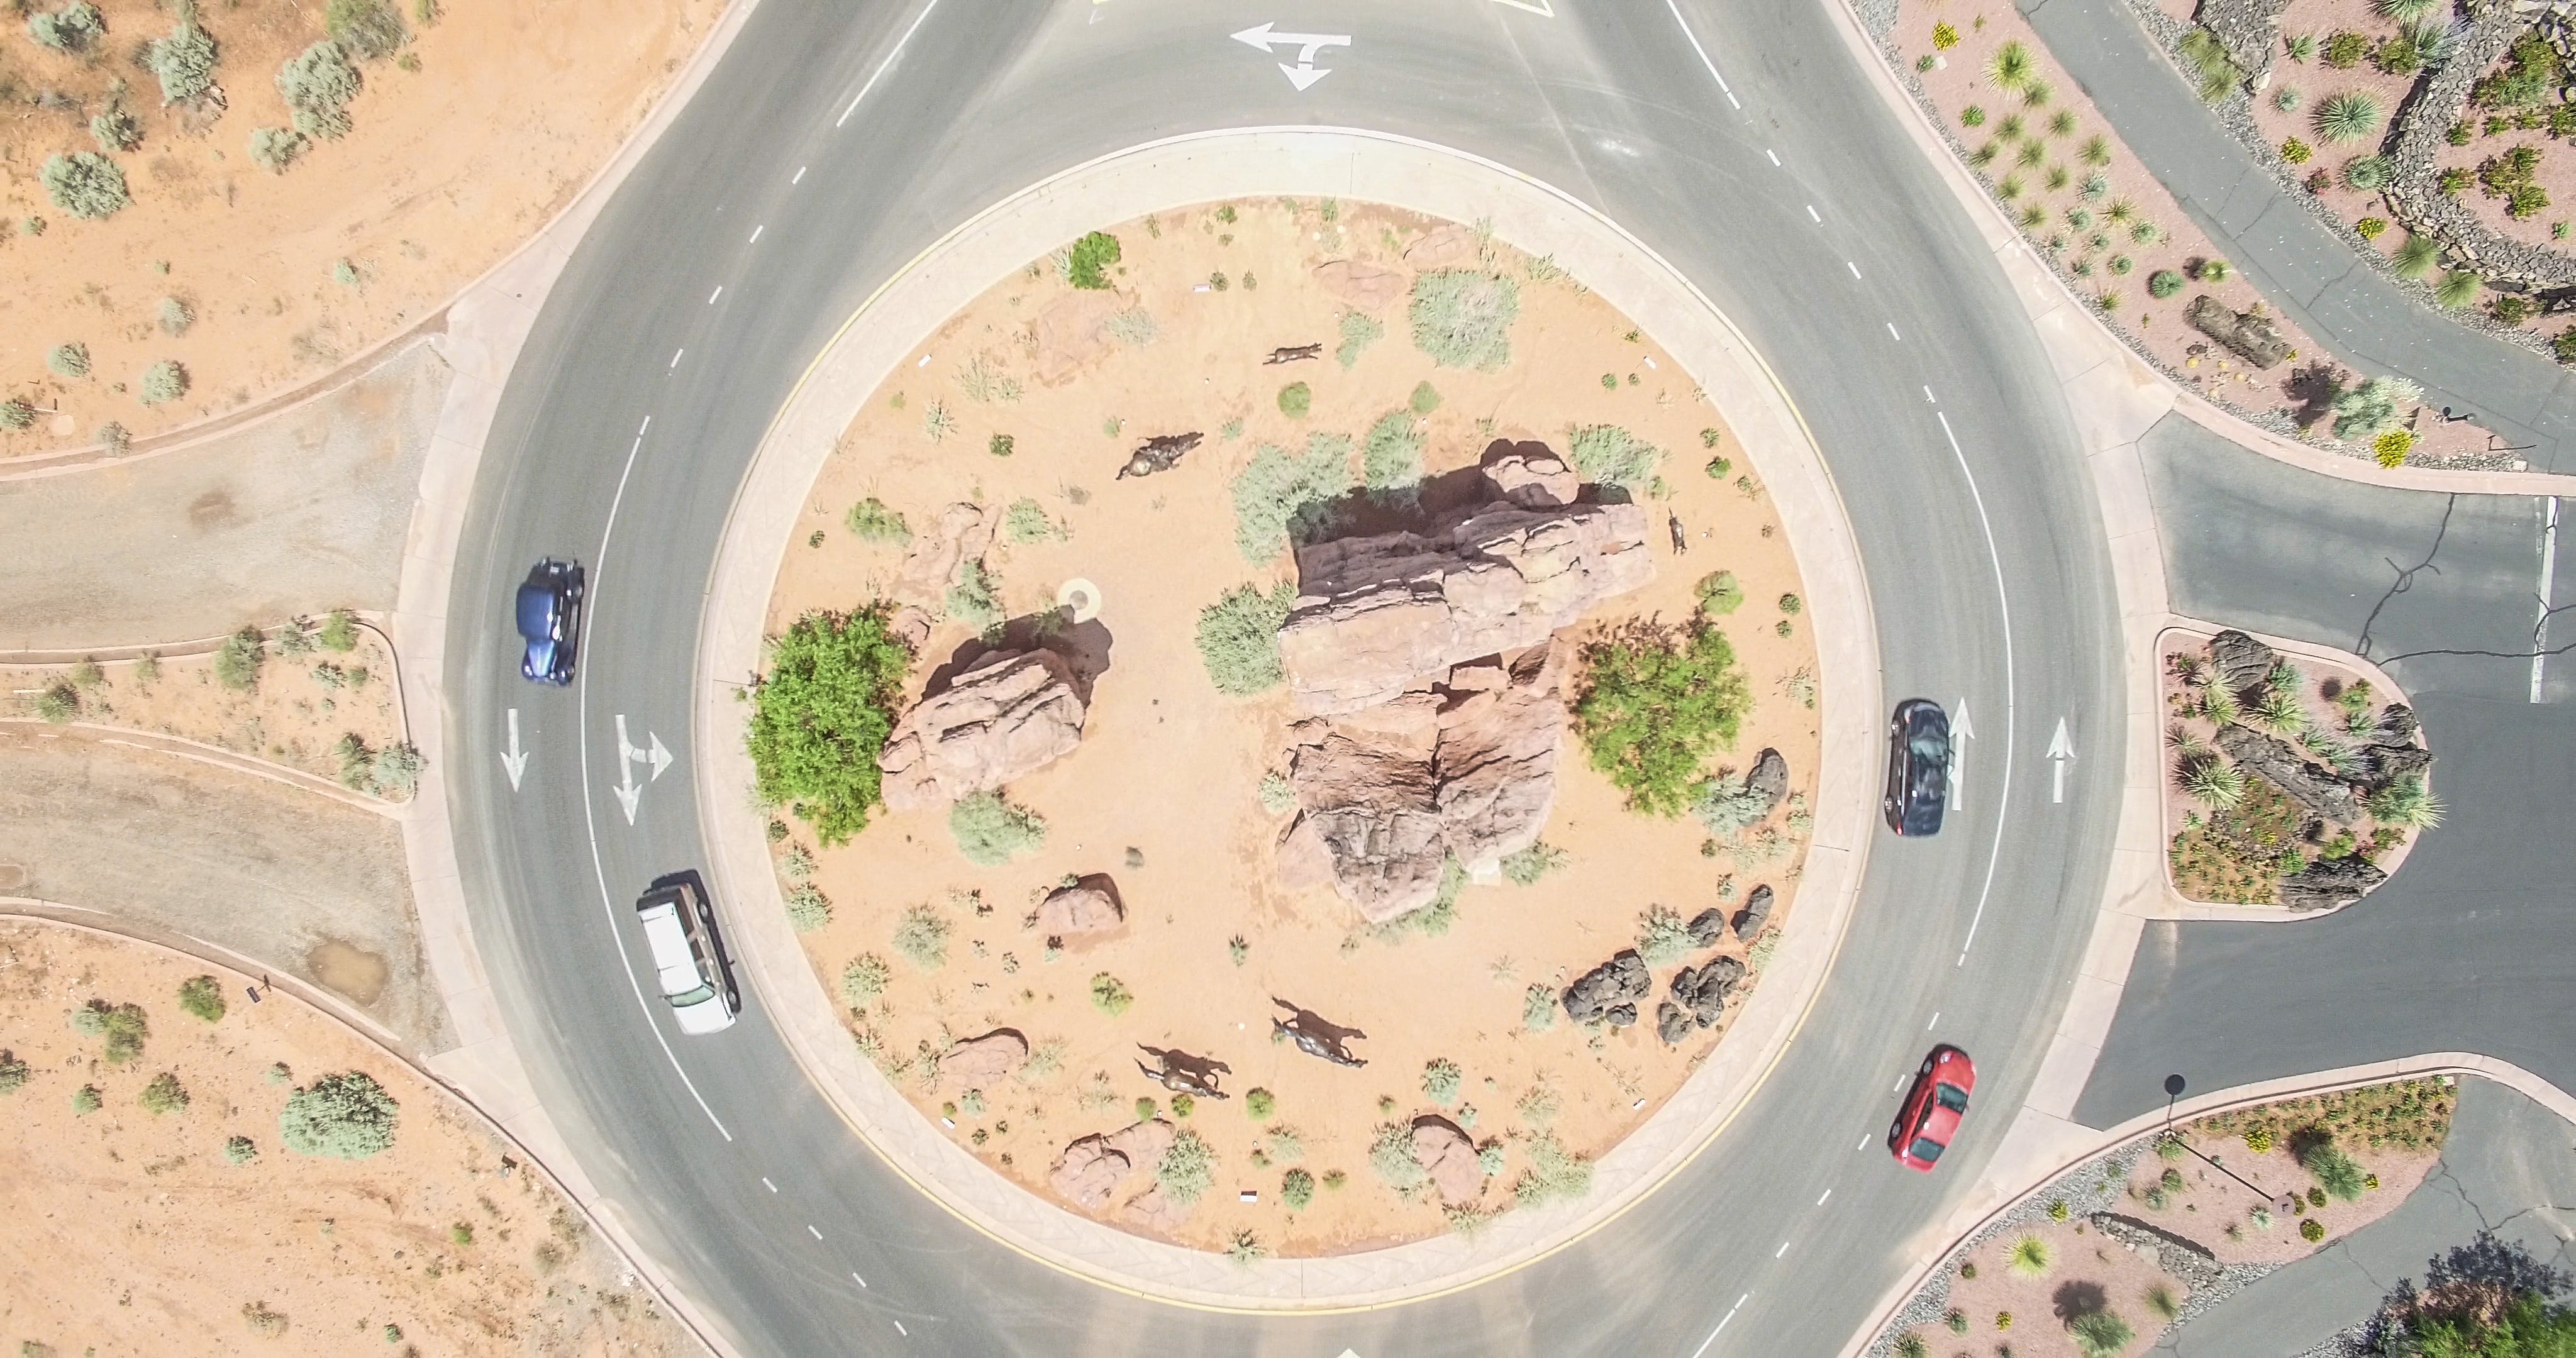 Aerial Photo of Four Cars on round about at Daytime